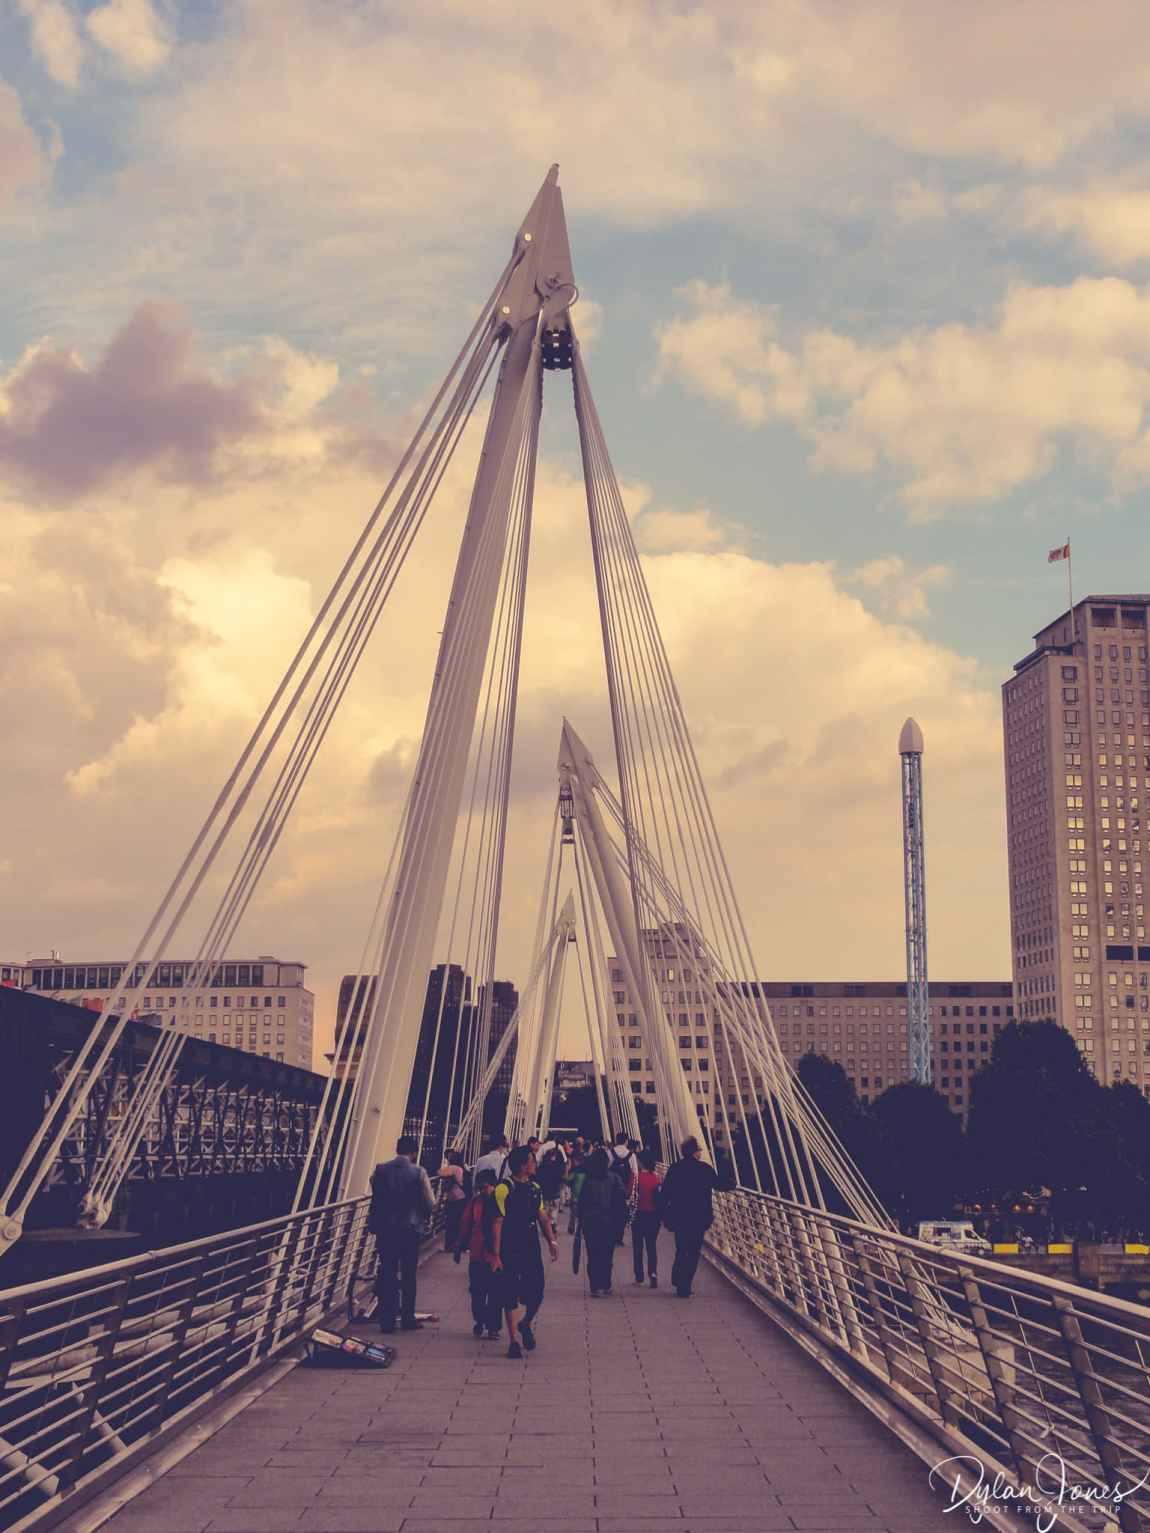 Crossing the Golden Jubilee Bridge from Embankment to the South Bank